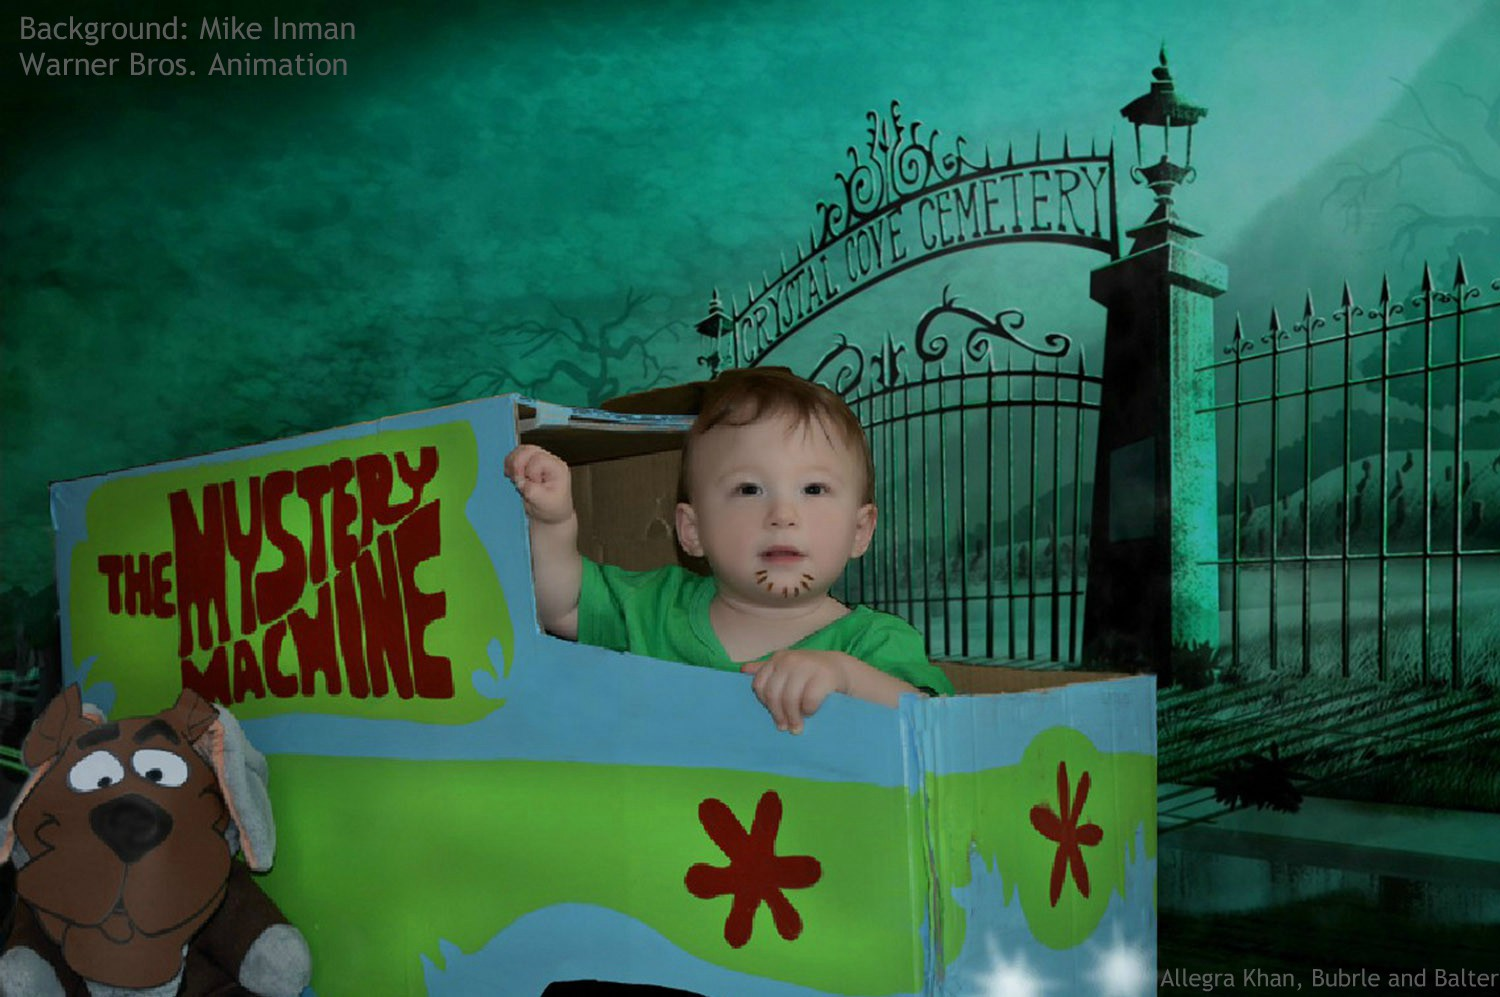 Scooby-Doo-and-Shaggy-1-Costume-Baby-Photoshoot-Burble-and-Balter.jpg